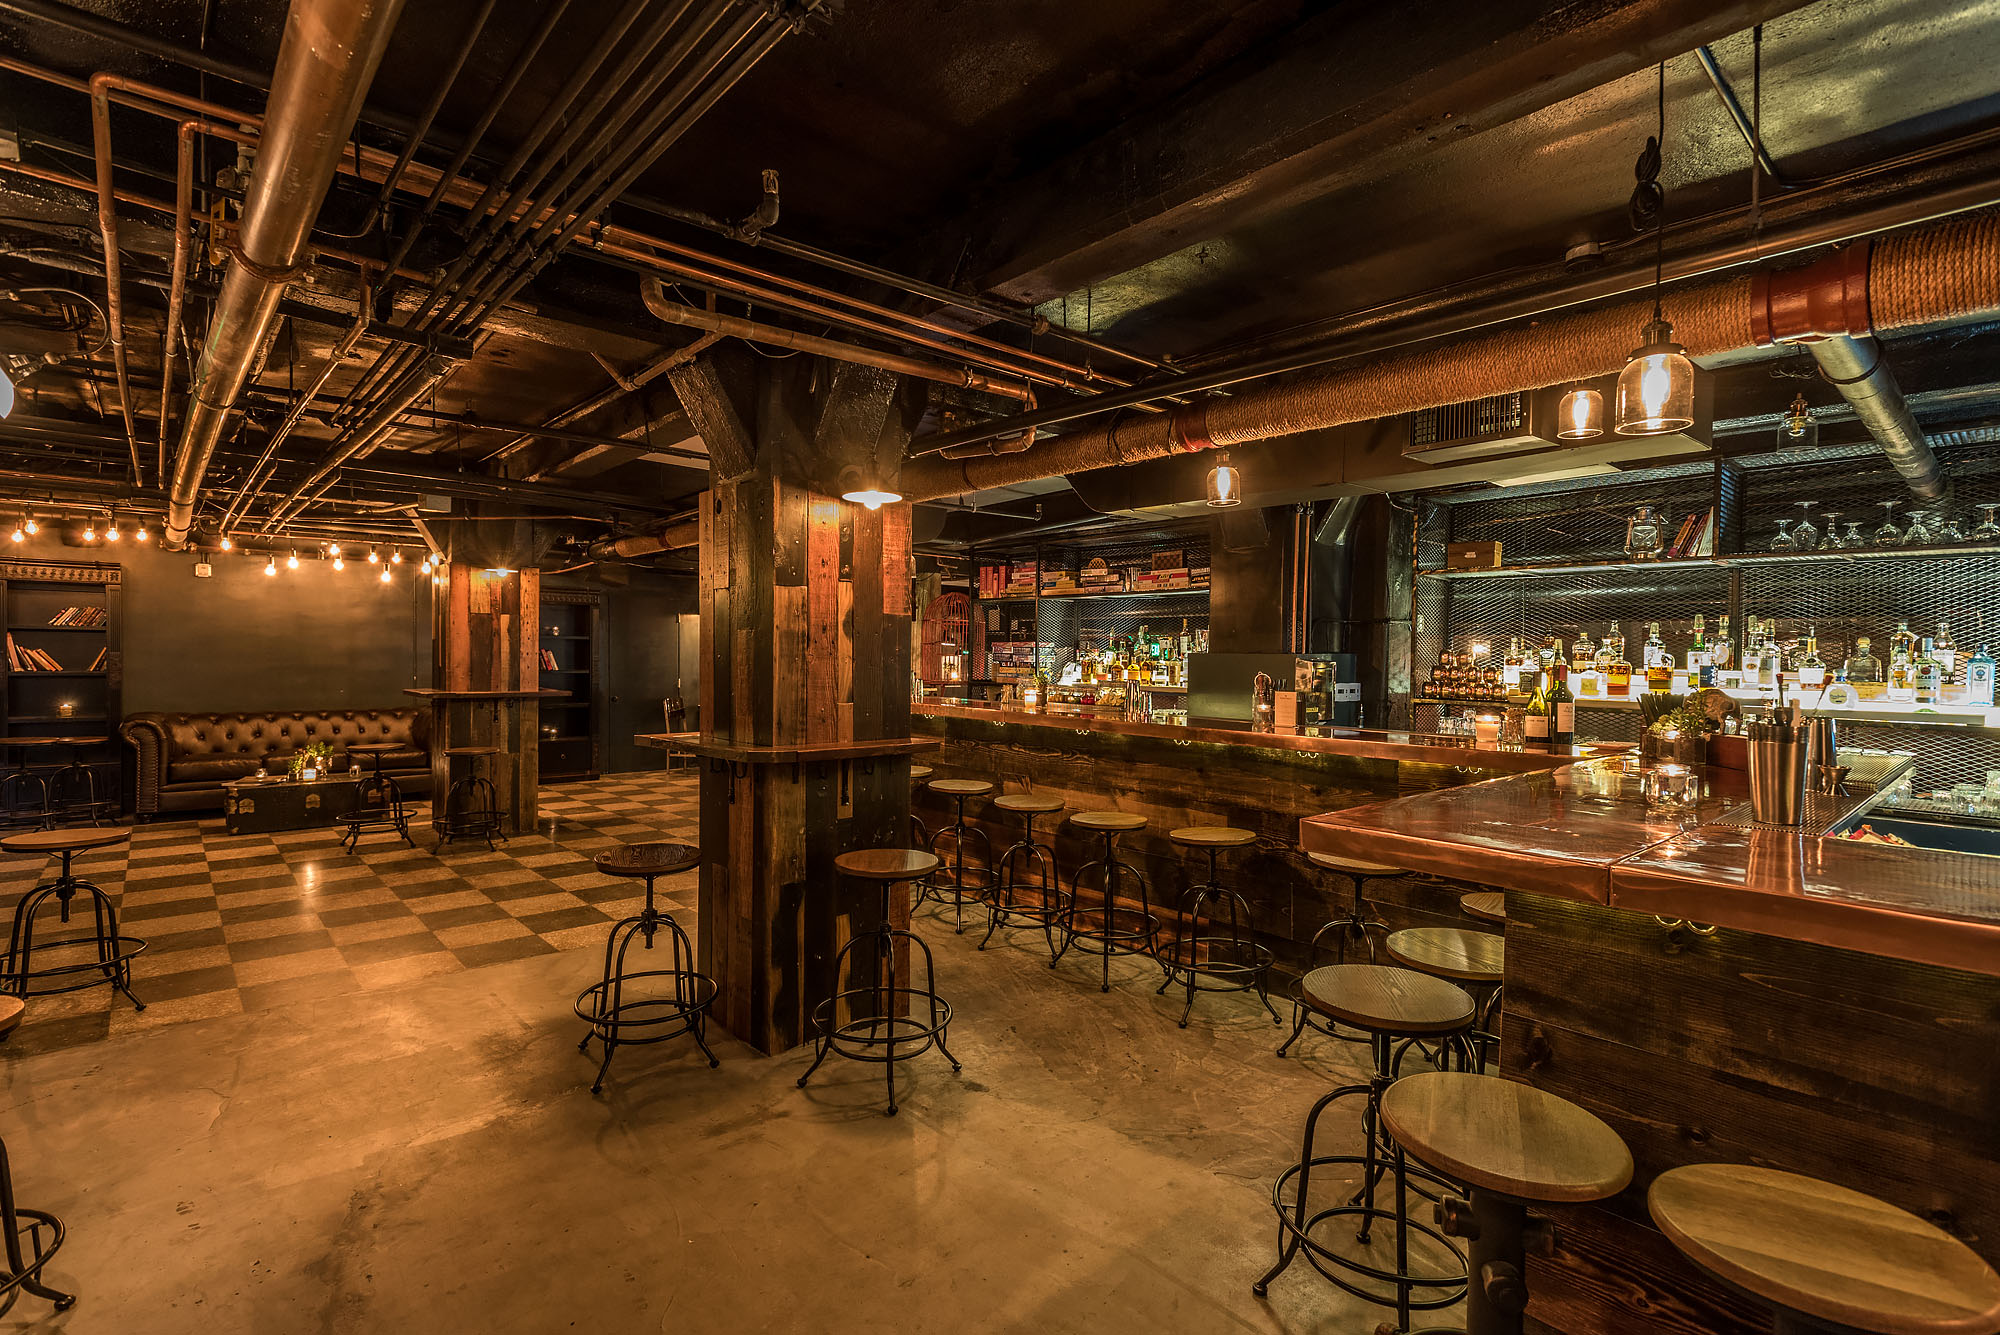 Downtown La S New Basement Bar Is A World War Ii Era Party